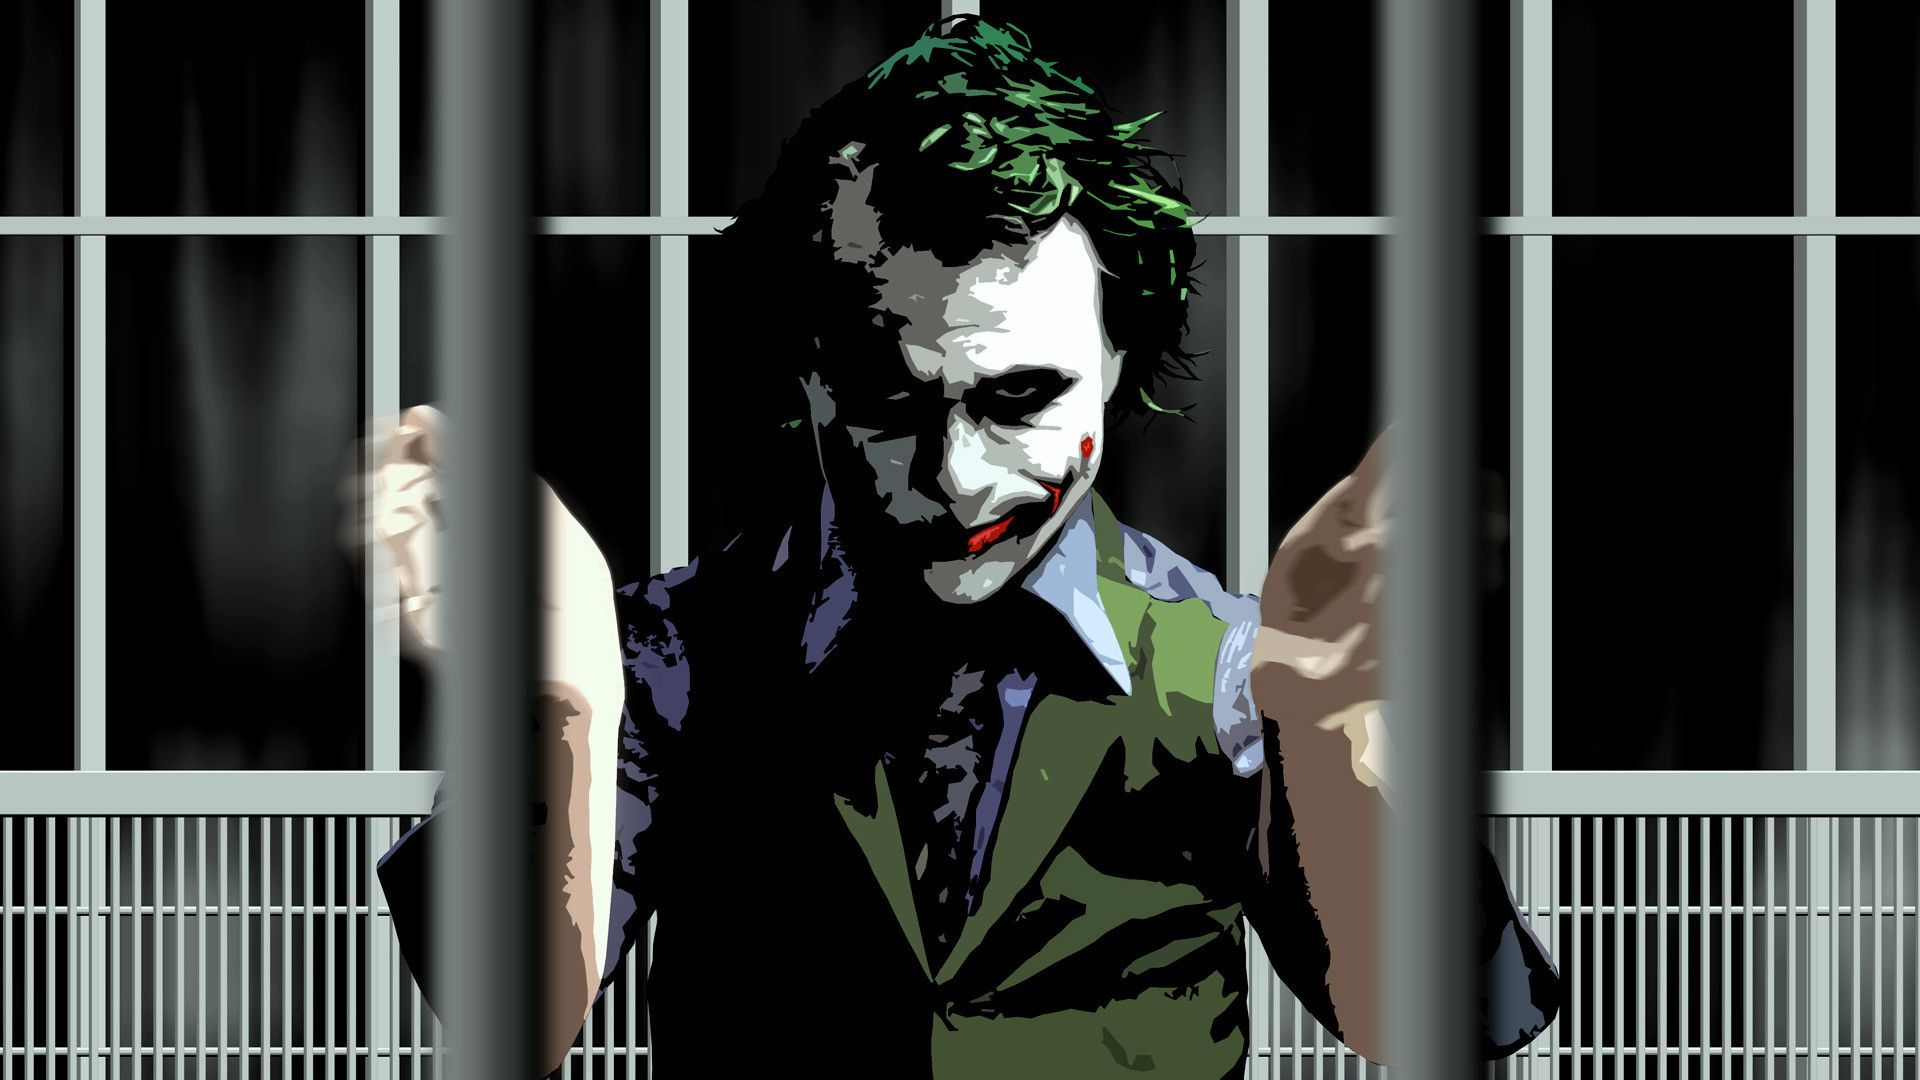 Joker The Dark Knight Wallpapers - Wallpaper Cave